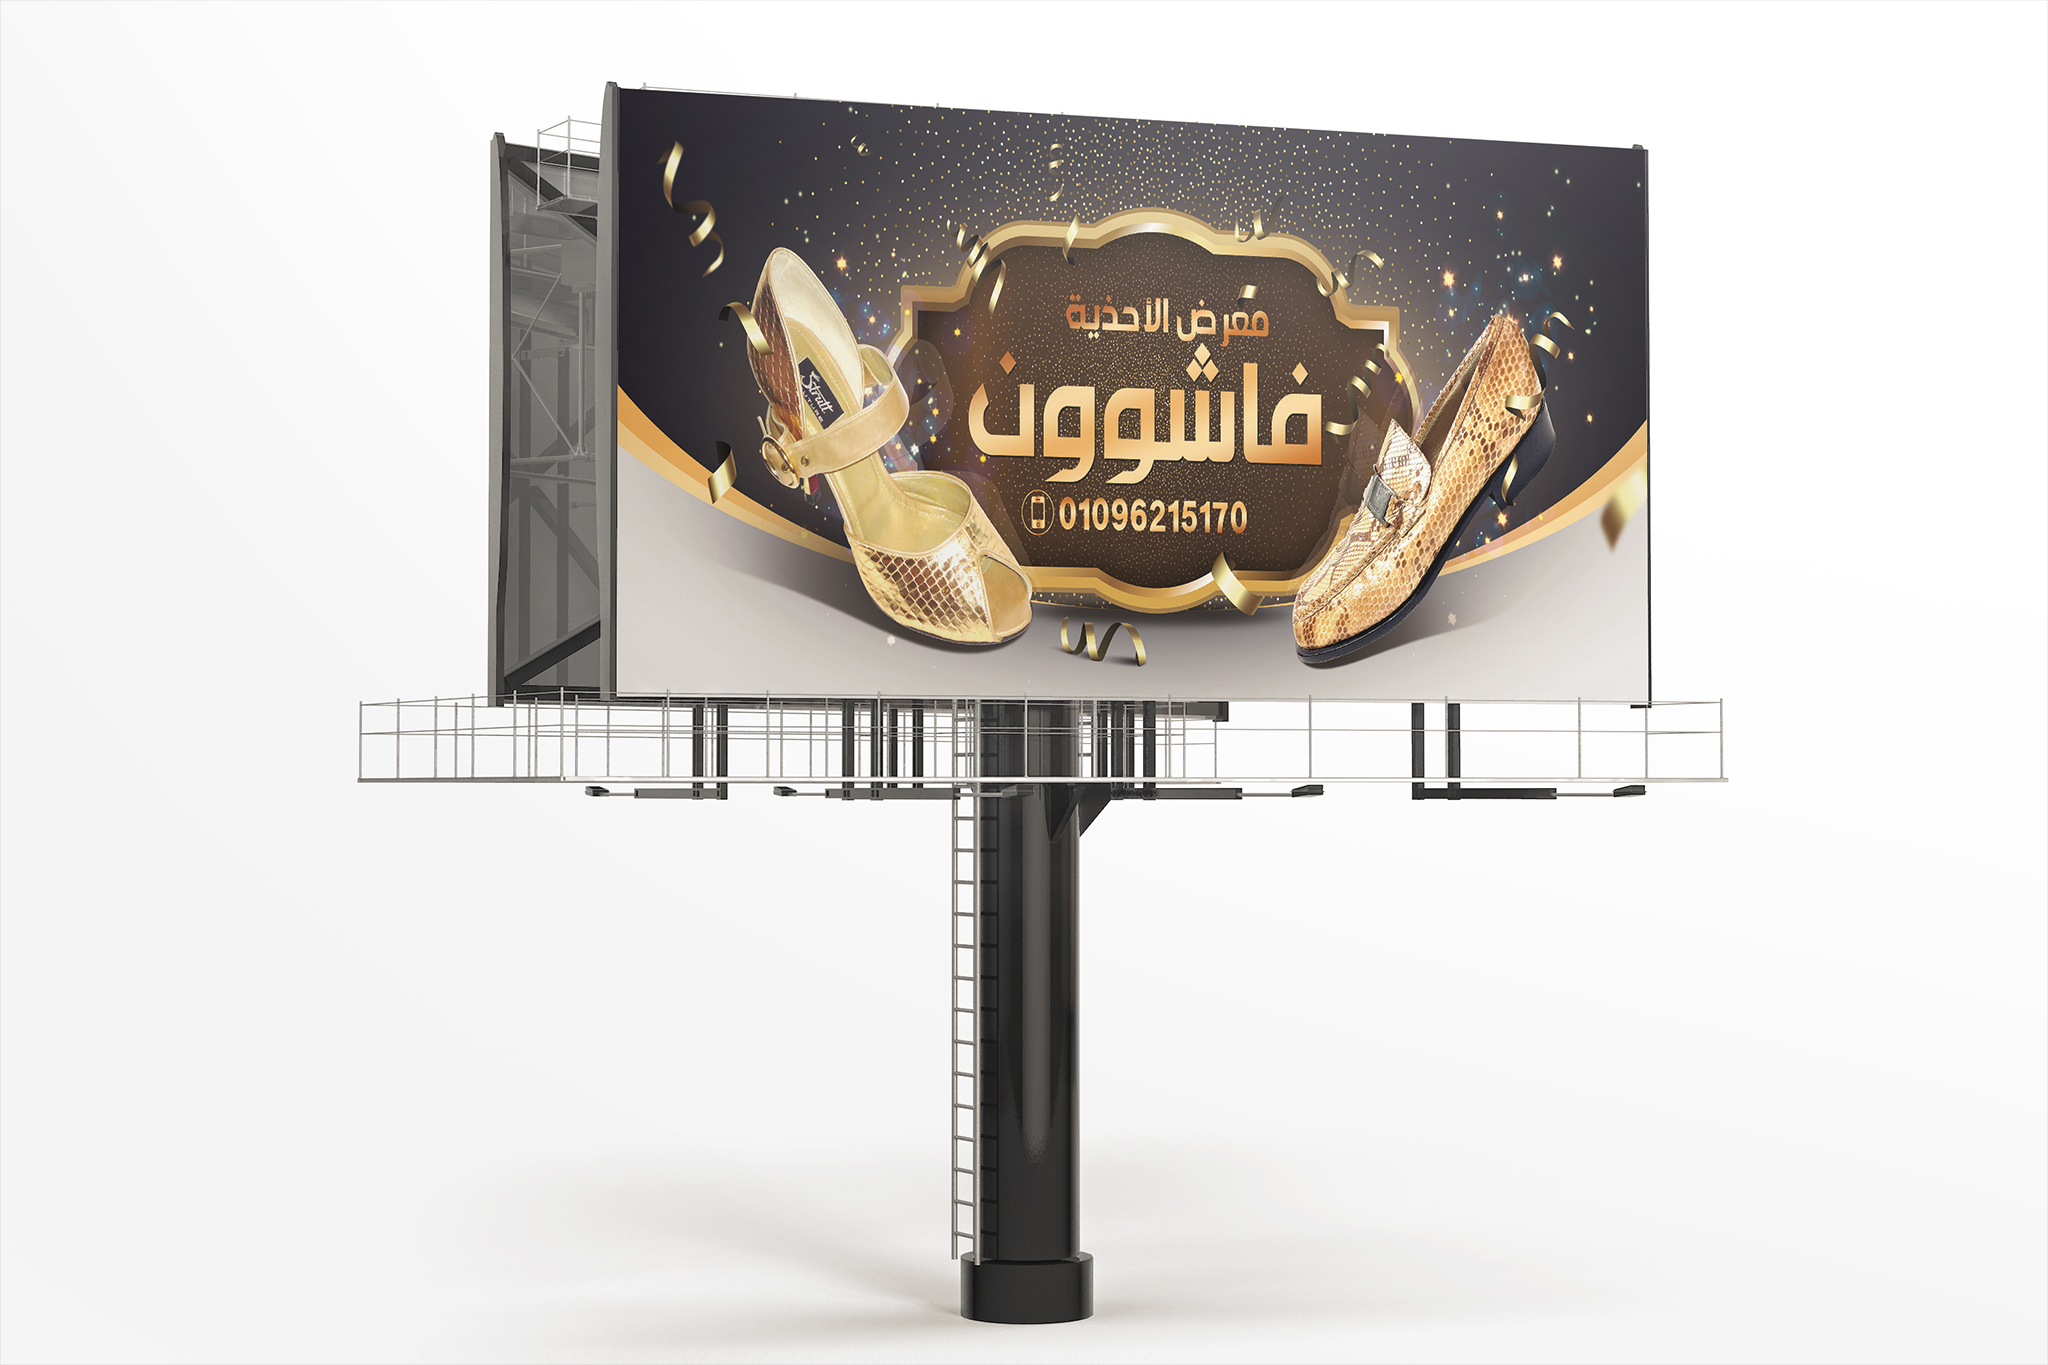 A professional mockup blender displaying giant banners and advertising banners in psd format